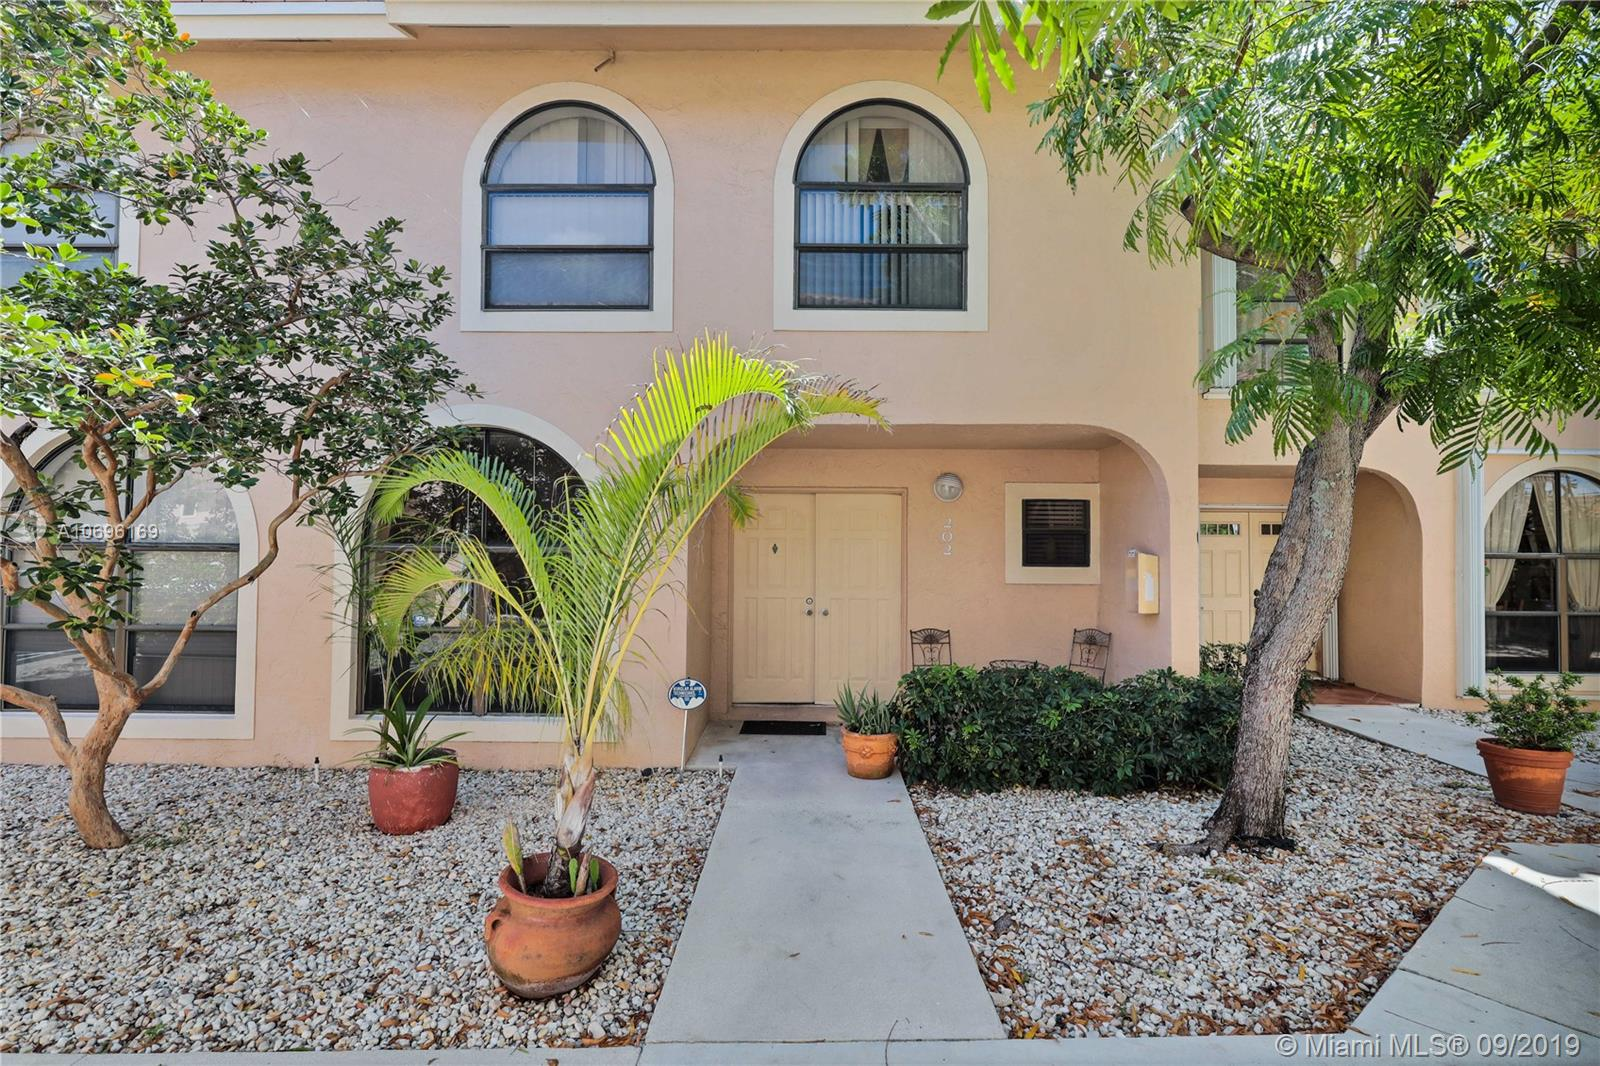 Enjoy the comfort of this hard to find, meticulously maintained 3BR/2.5BA town home showcasing a number of notable features including neutral tile flooring in the kitchen and baths, high end laminate floors throughout, as well as a bright, well-equipped kitchen with white cabinets and appliances, and tiled counter tops.  This home has plenty of natural light, with a wall of windows in the living room and dining room areas. Devoted to rest and relaxation, the 2nd level is home to 2 guest rooms, a upgraded full bath, and a Master Suite with vaulted ceiling, and beautiful master bath with white cabinets. Outdoors you'll find a lushly landscaped backyard with over-sized patio. Great community with low HOA dues. No assessments! Numerous shopping and dining options nearby.